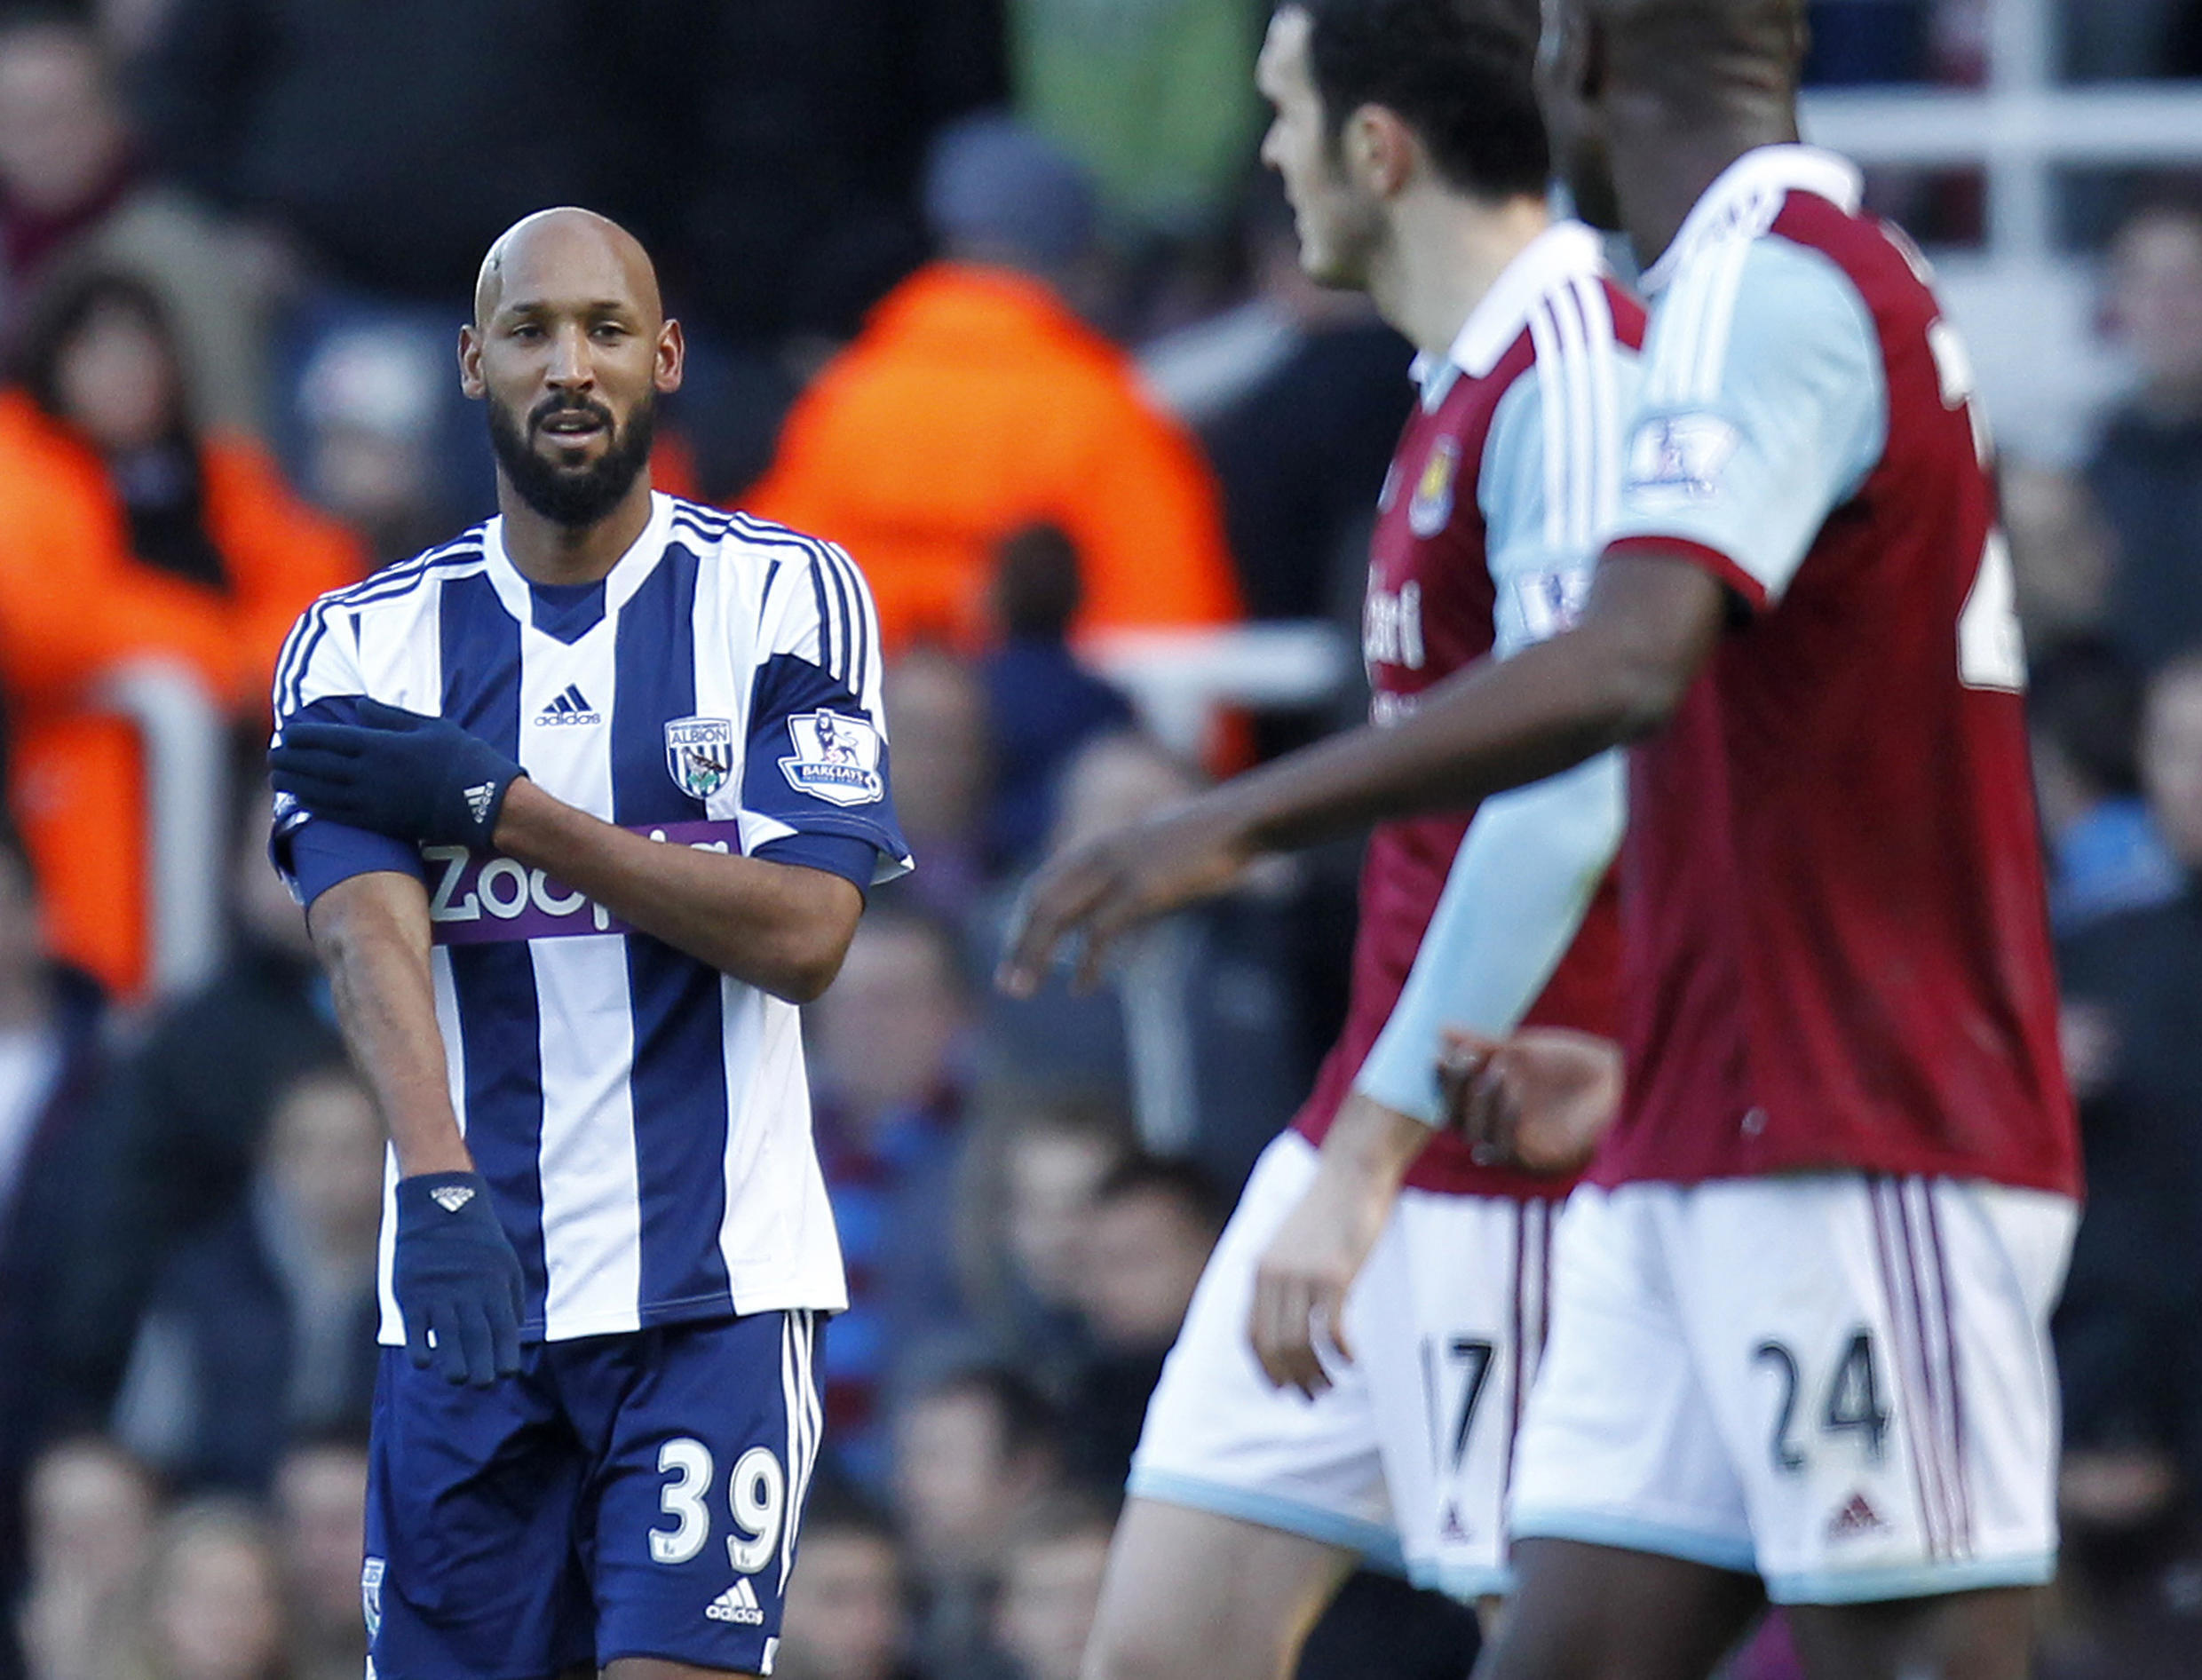 Nicolas Anelka makes the quenelle gesture to celebrate his goal, 28 december, 2013